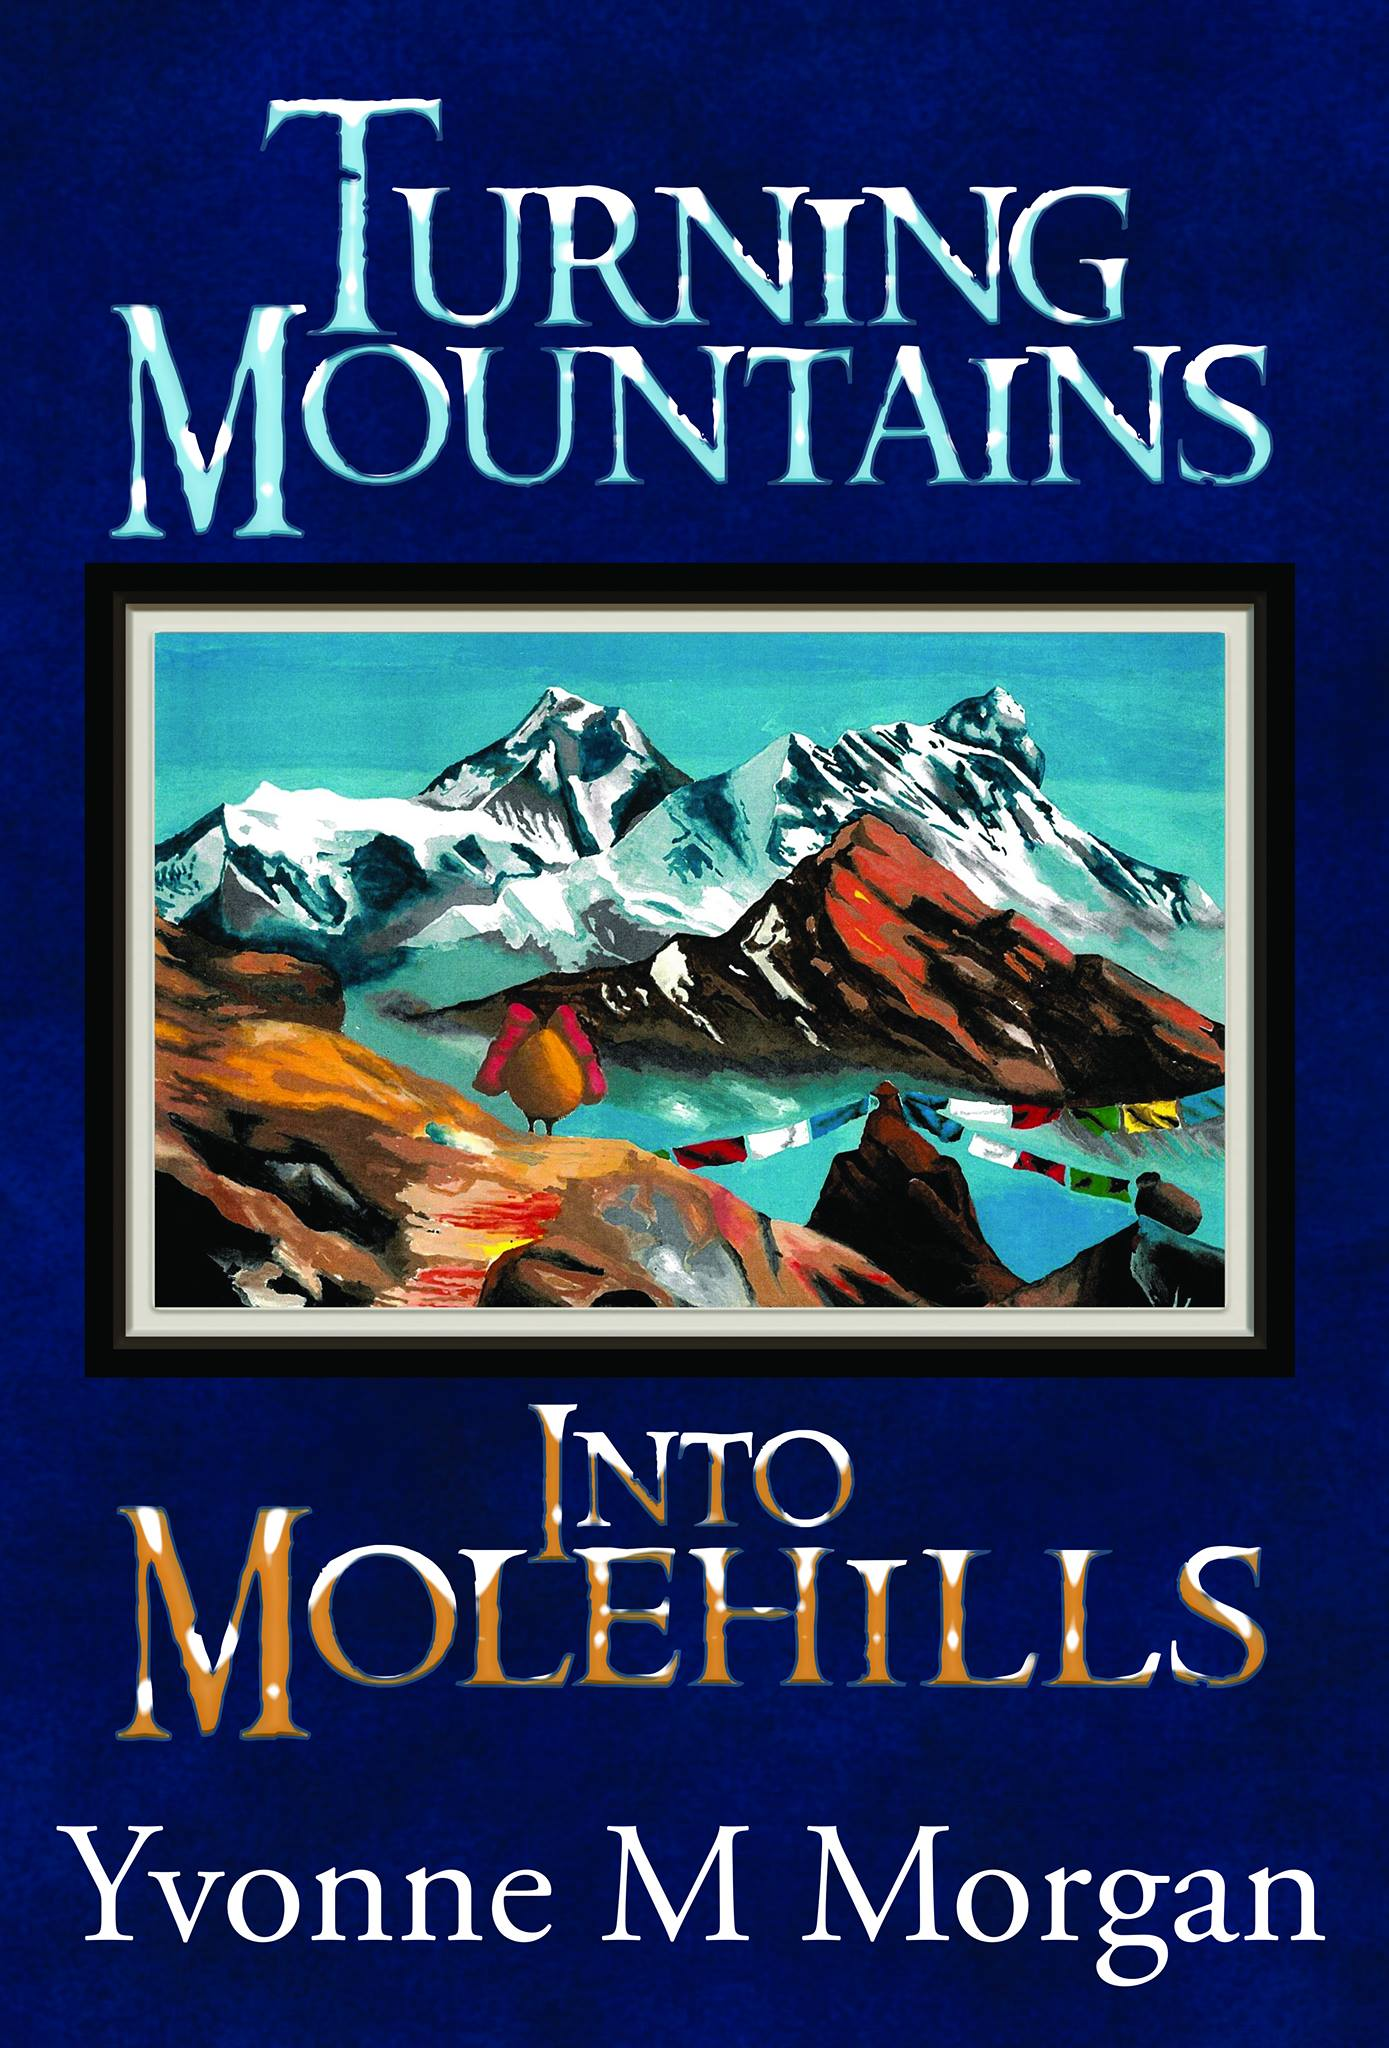 My book turning Mountains into Molehills